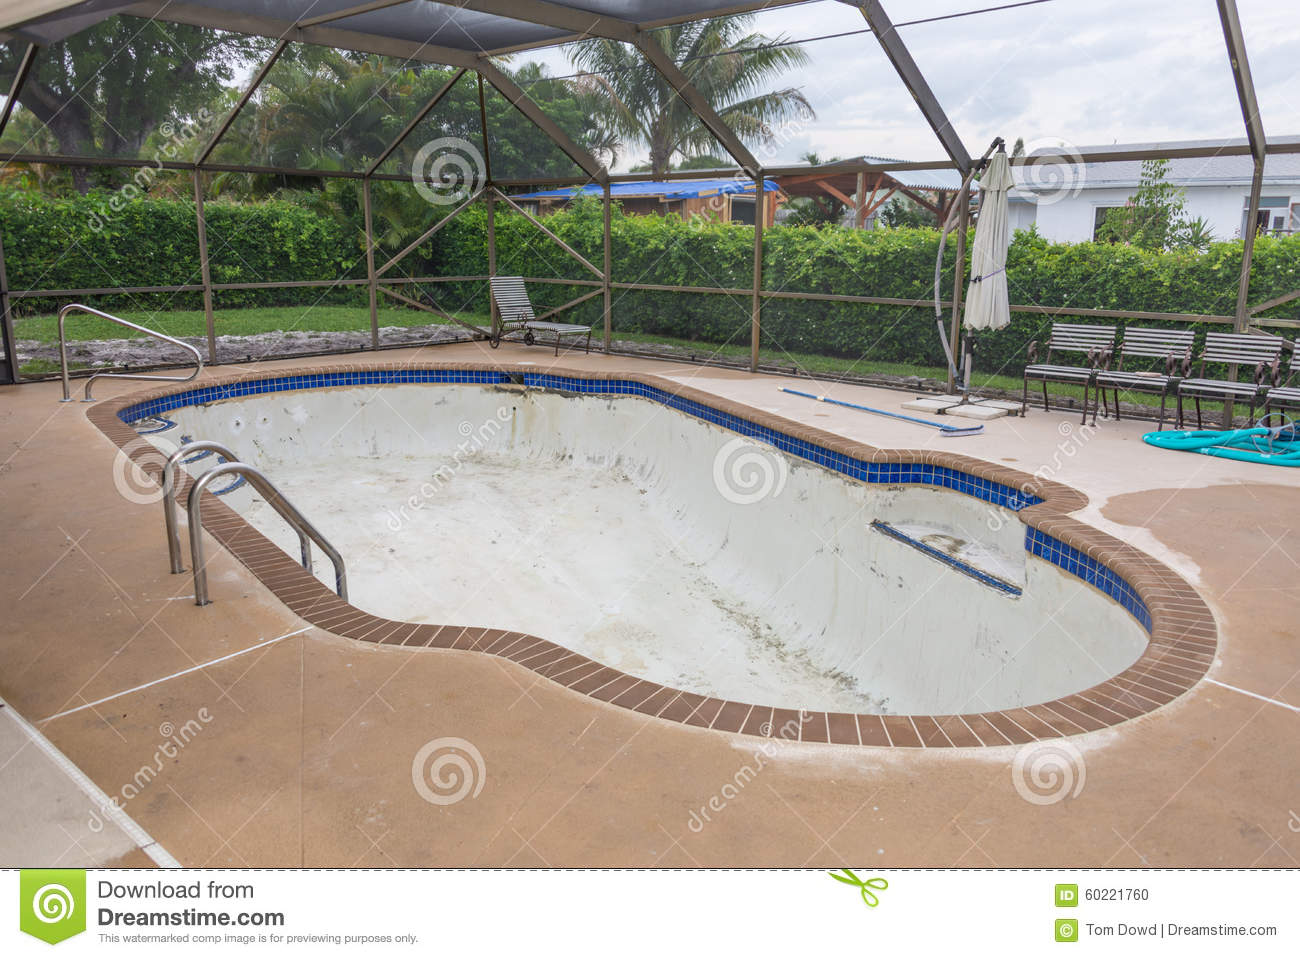 New Pool Tile Border Grout Work Remodel Stock Photo - Image ...